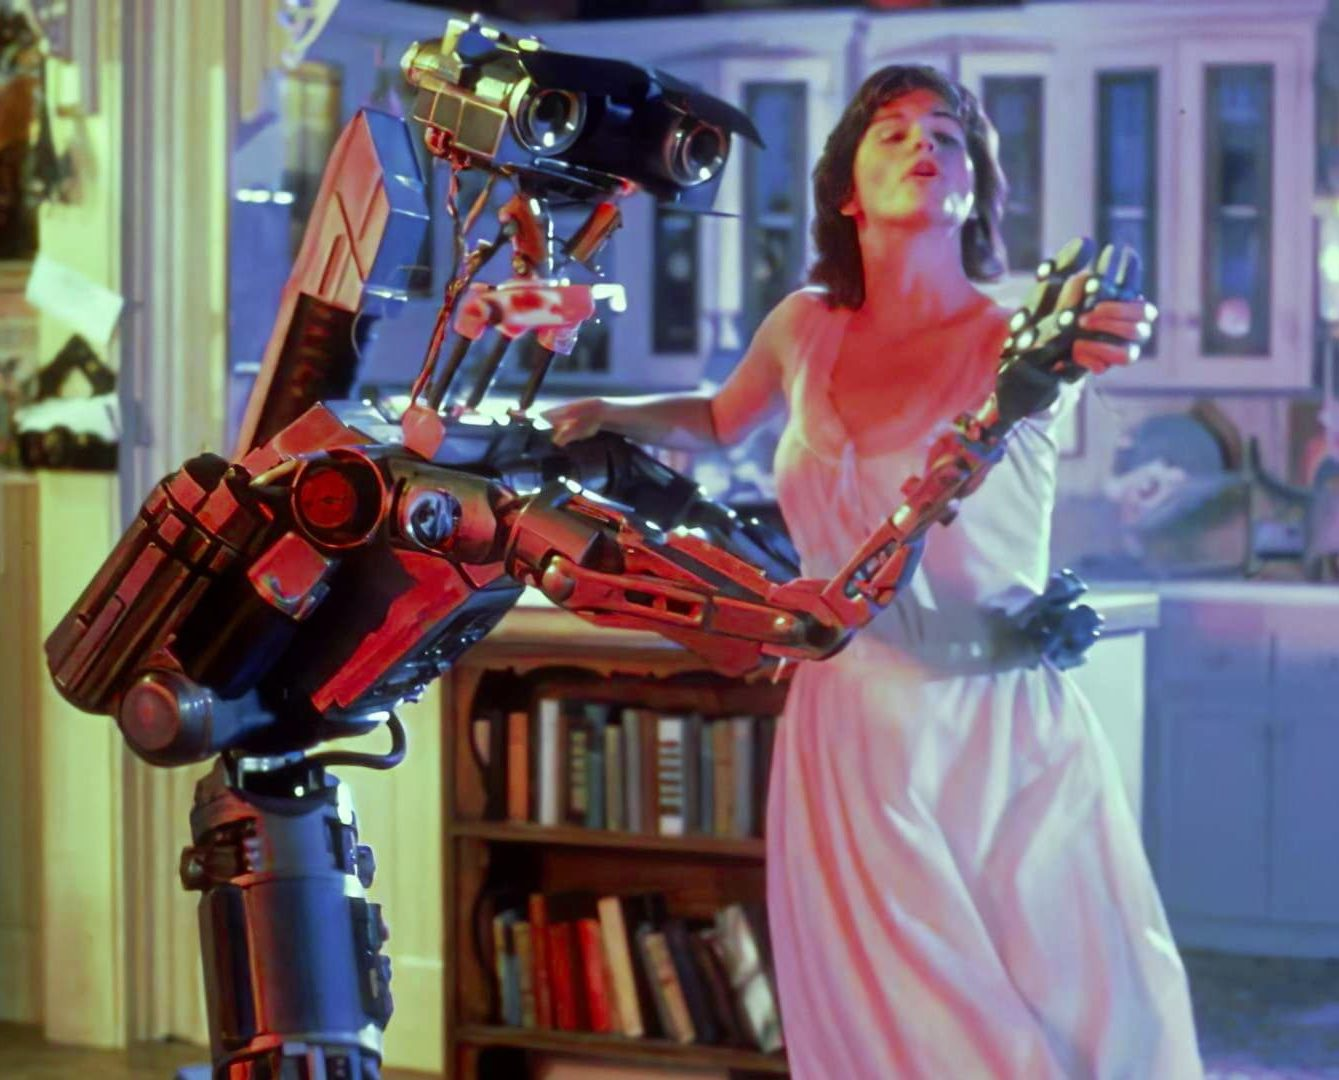 short circuit 1 e1621259374591 The Best (And Worst) Movie Robots